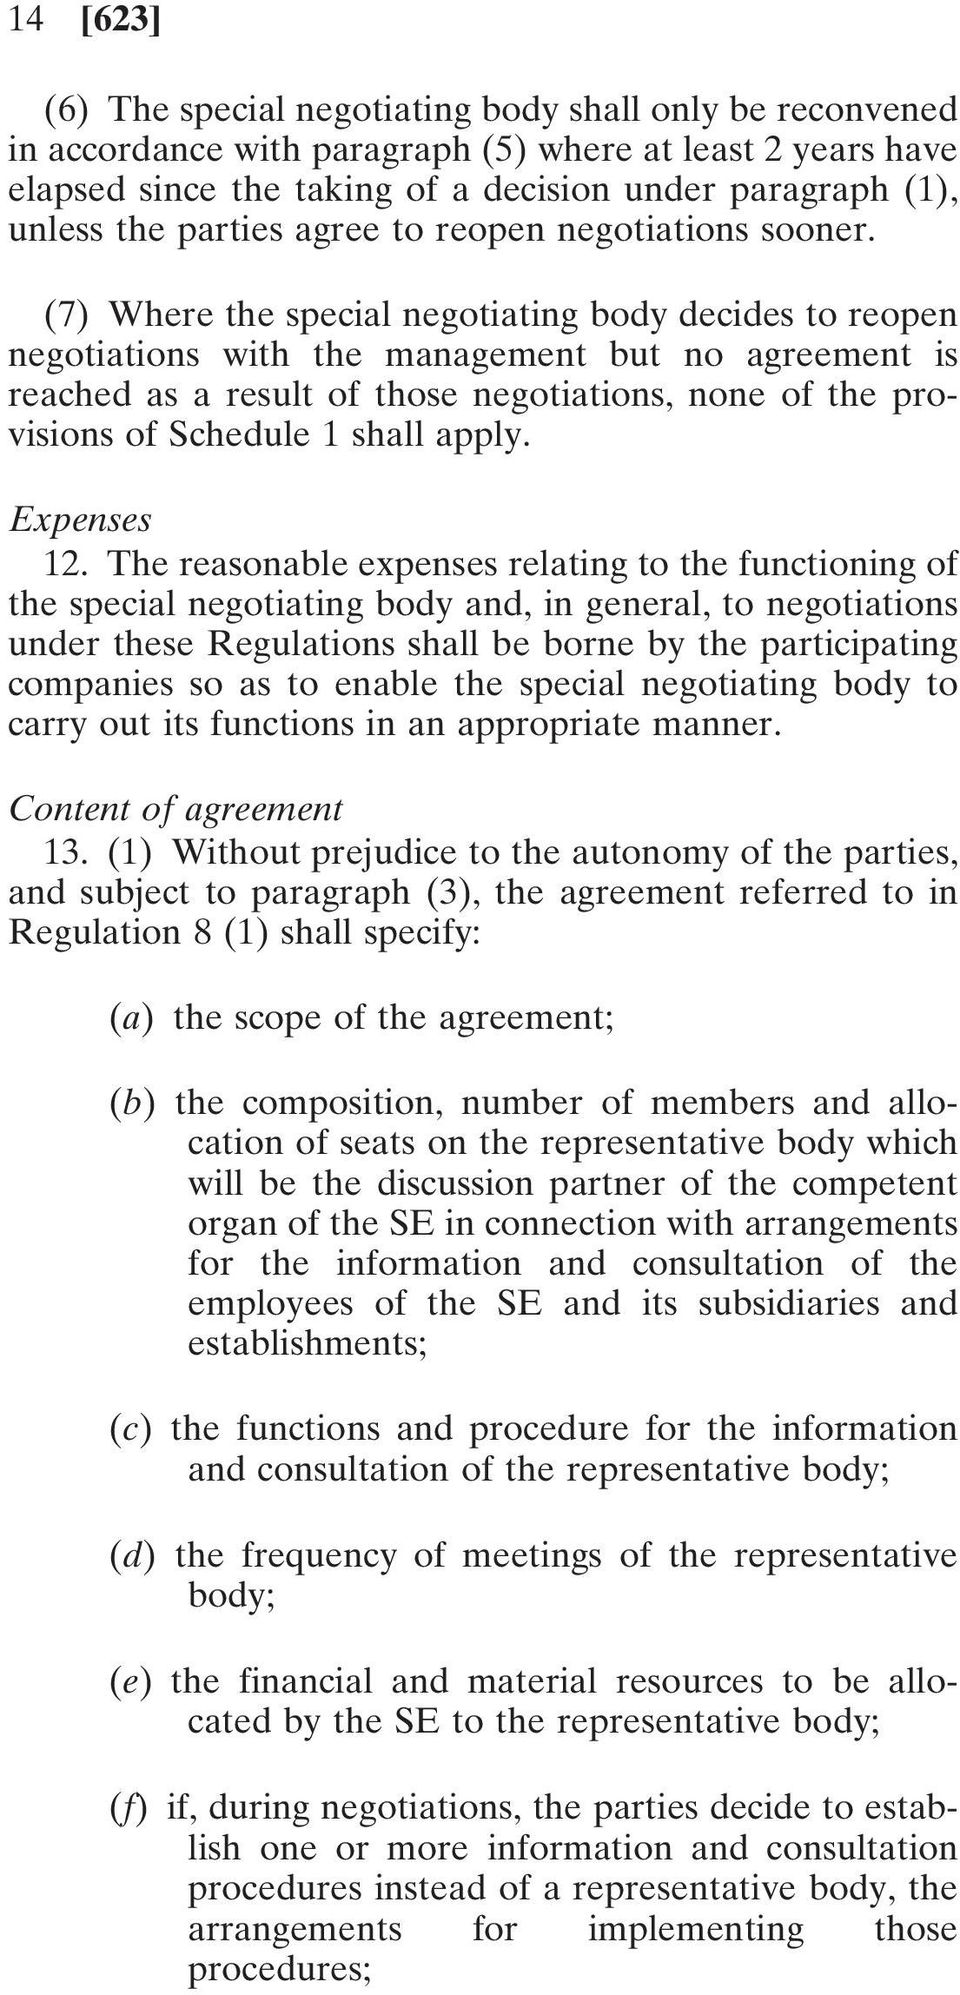 (7) Where the special negotiating body decides to reopen negotiations with the management but no agreement is reached as a result of those negotiations, none of the provisions of Schedule 1 shall